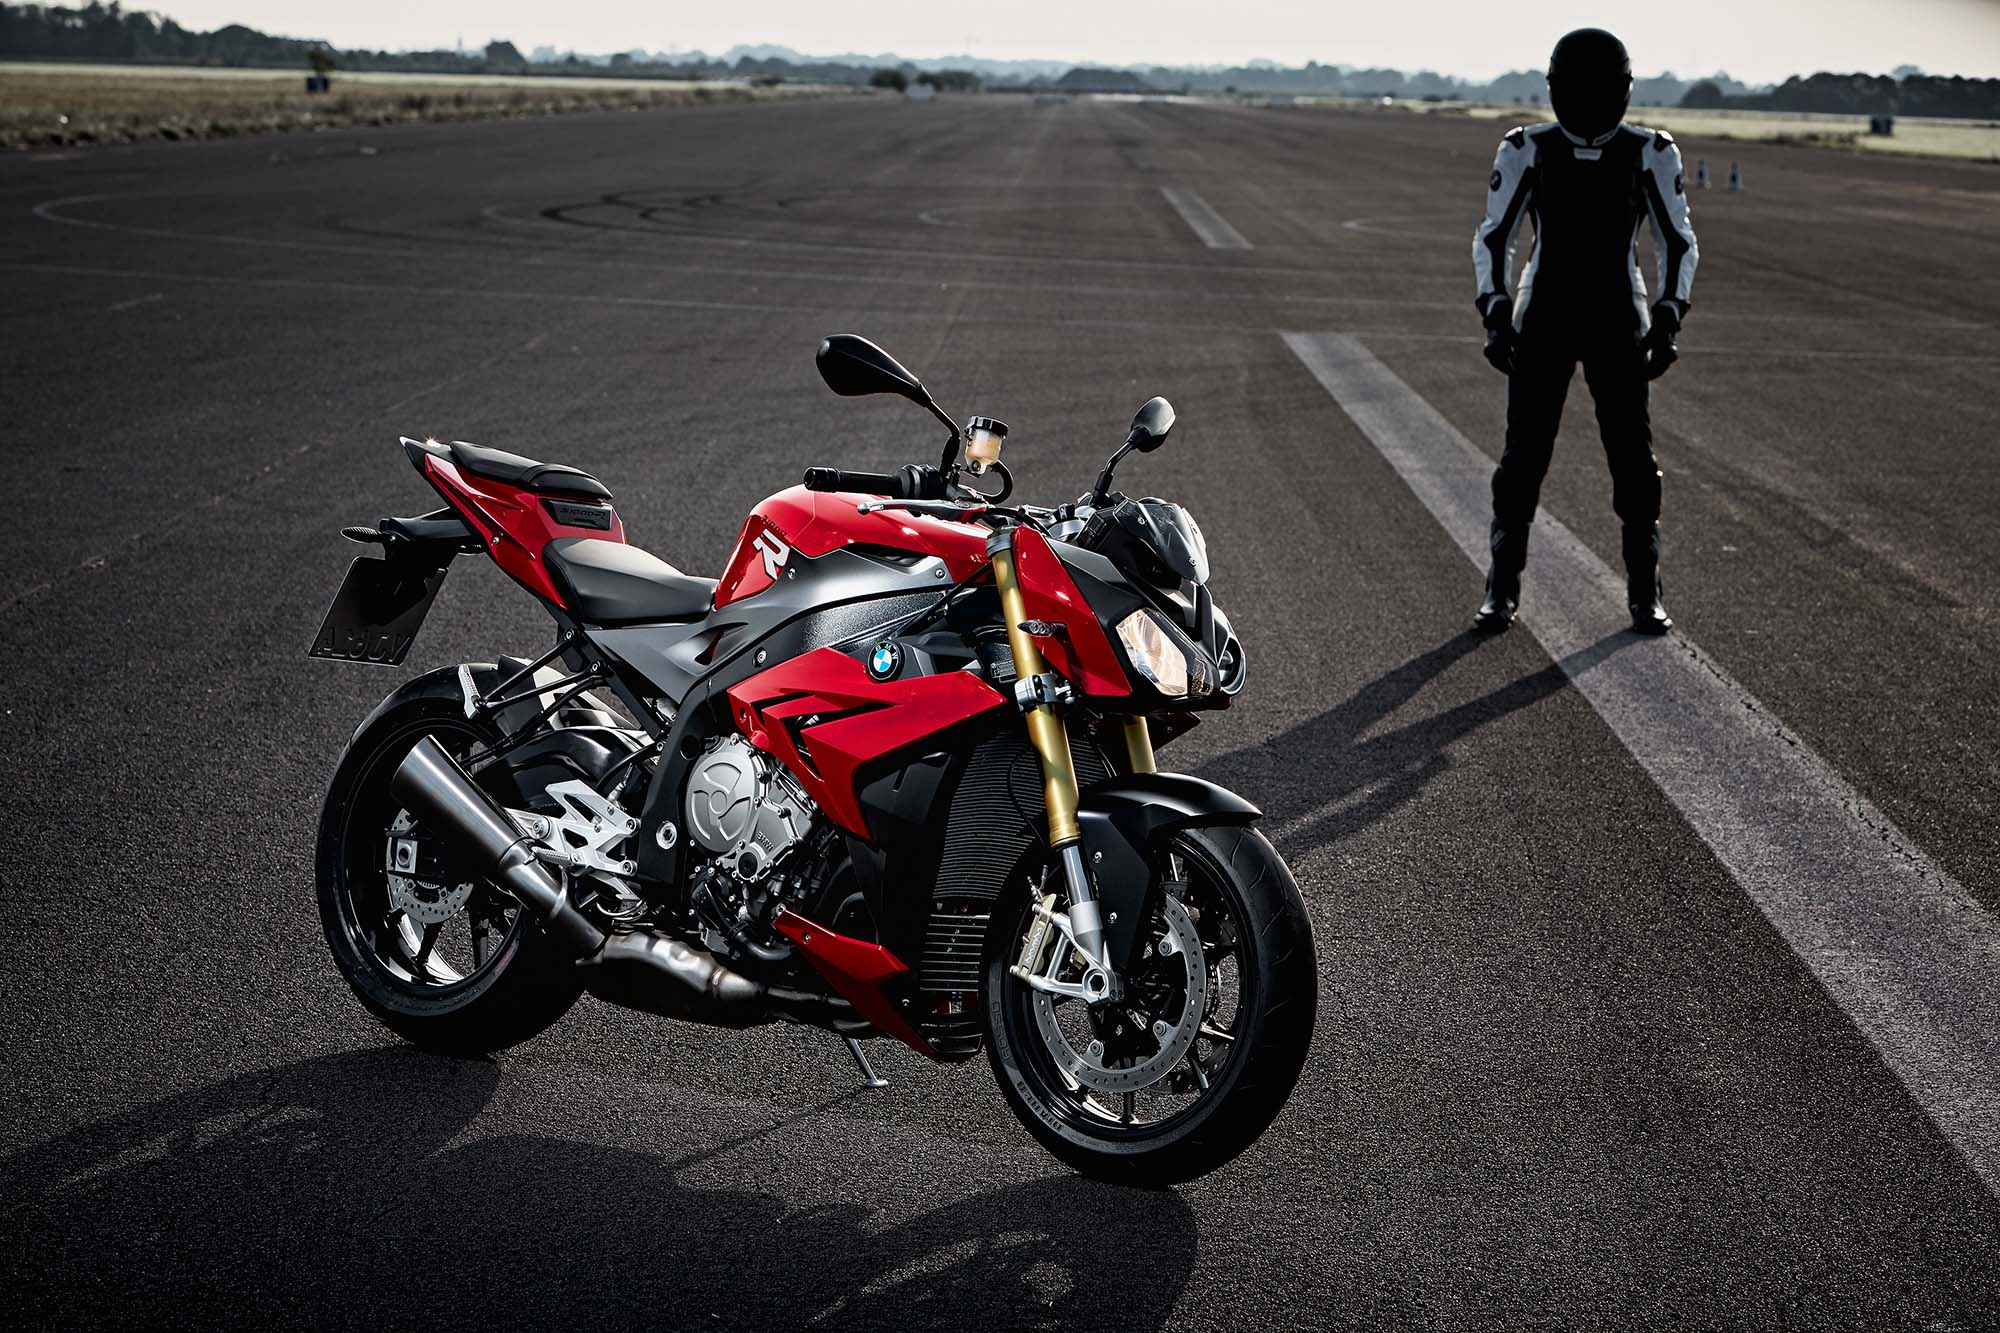 http://www.asphaltandrubber.com/wp-content/gallery/2014-bmw-s1000r/2014-bmw-s1000r-action-74.jpg